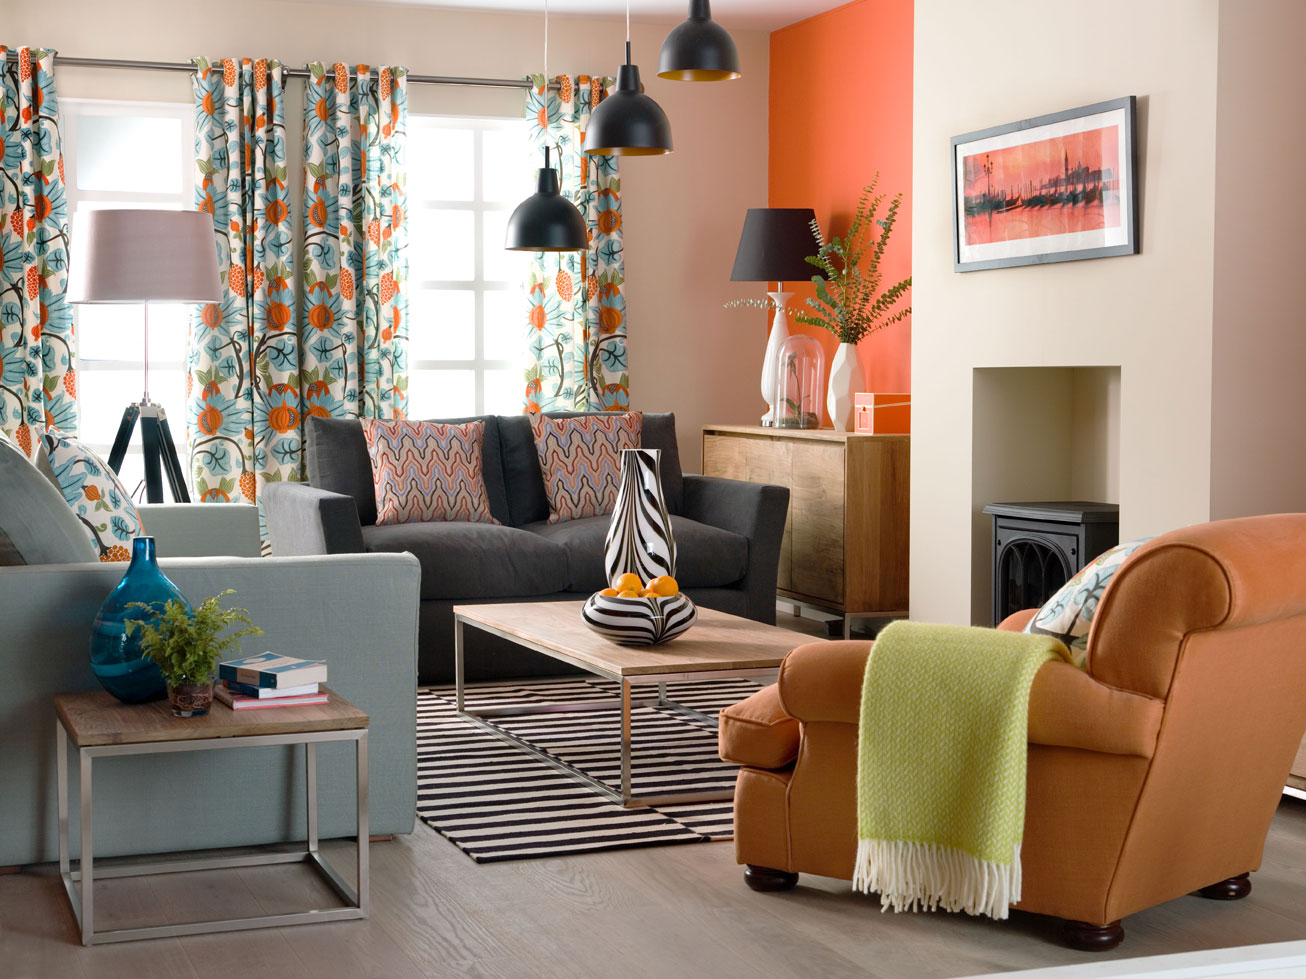 Living room designed by Sophie Robinson for Ideal Home. Photograph by Simon Whitmore